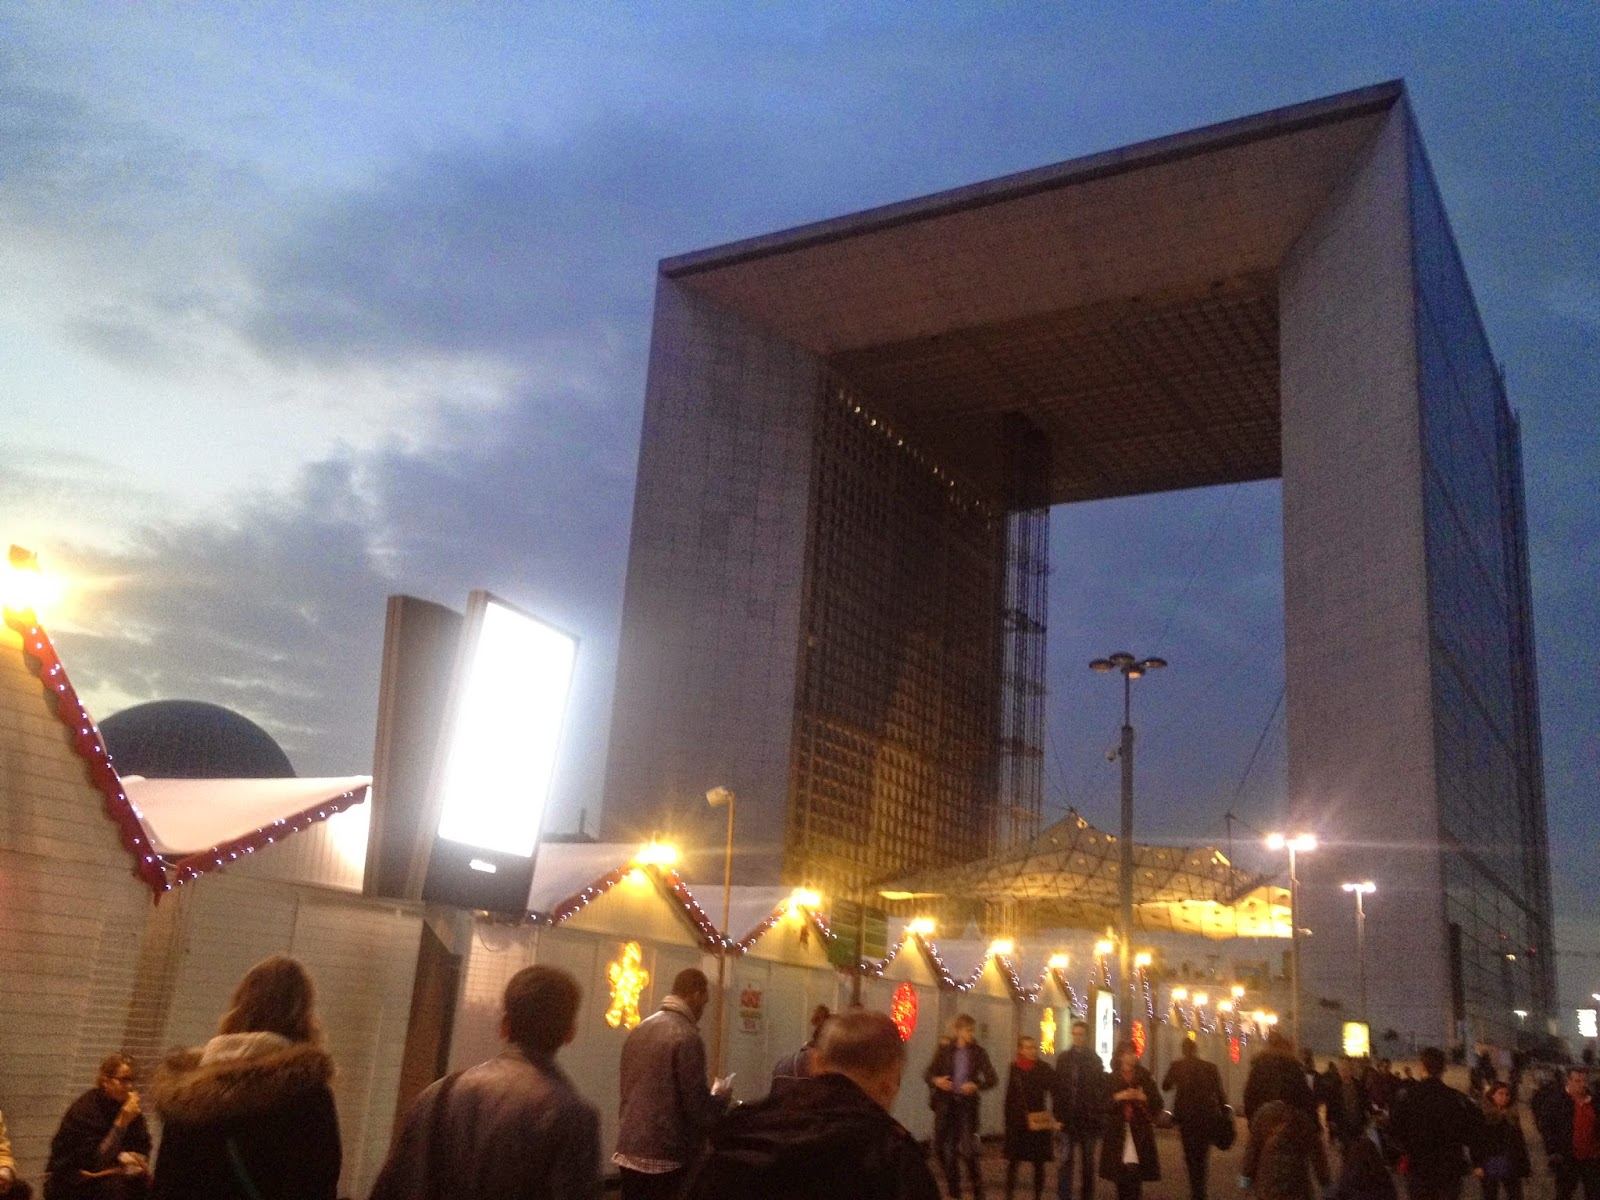 La Grande Arche at La Défense